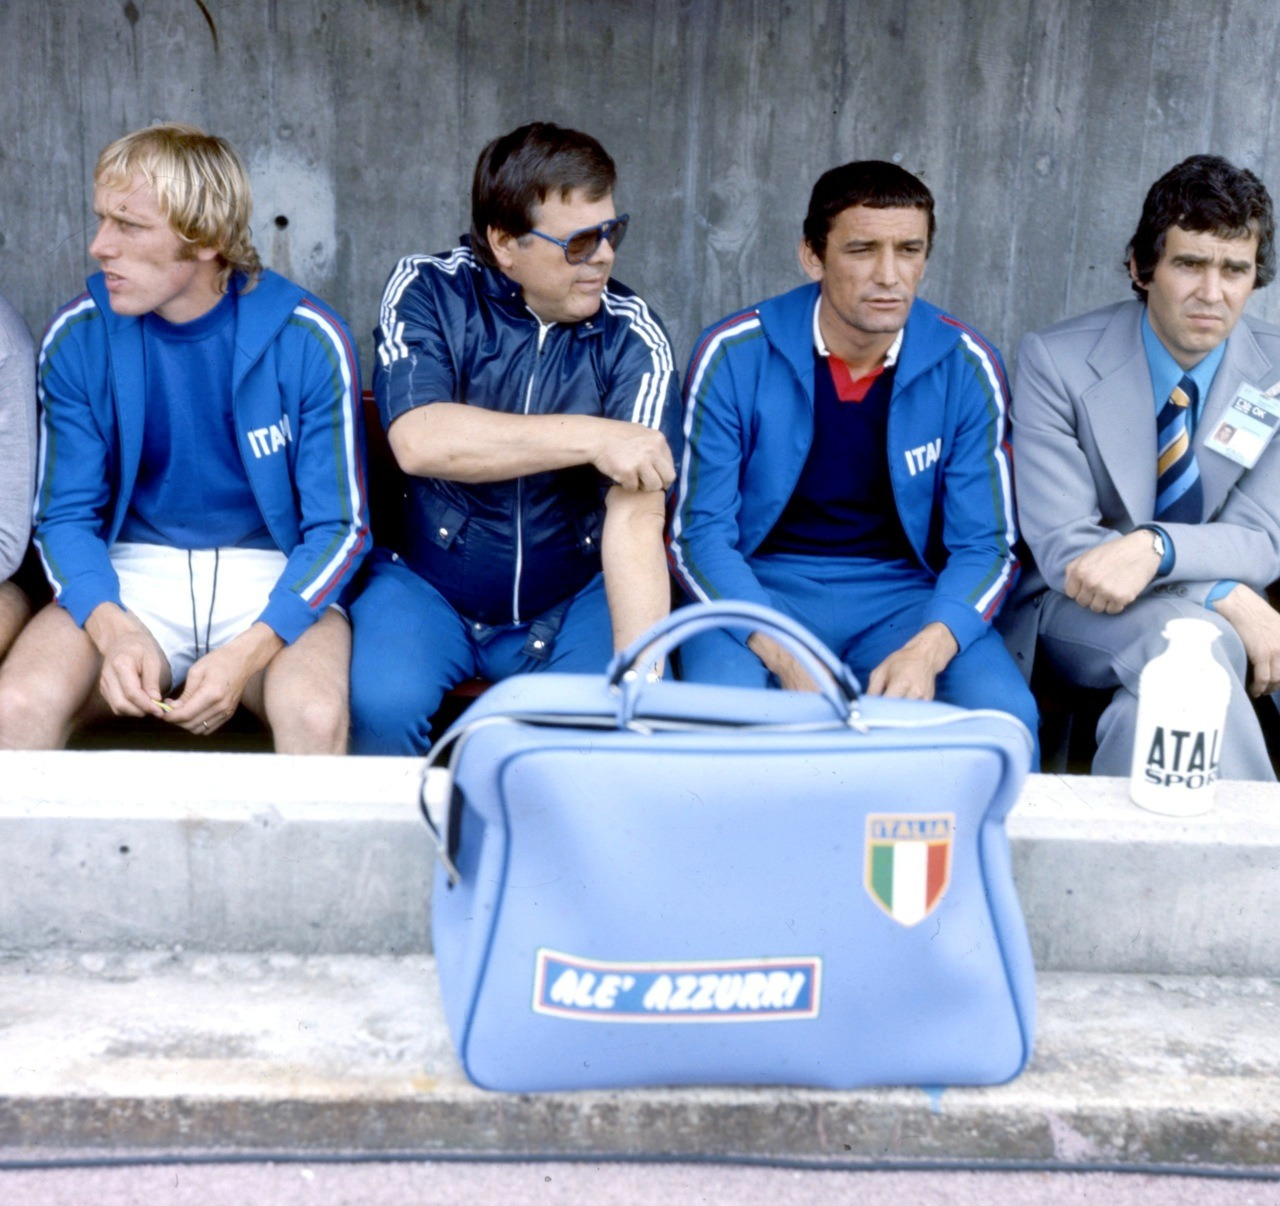 Luciano Re Cecconi and Gigi Riva on the bench, World Cup 1974.